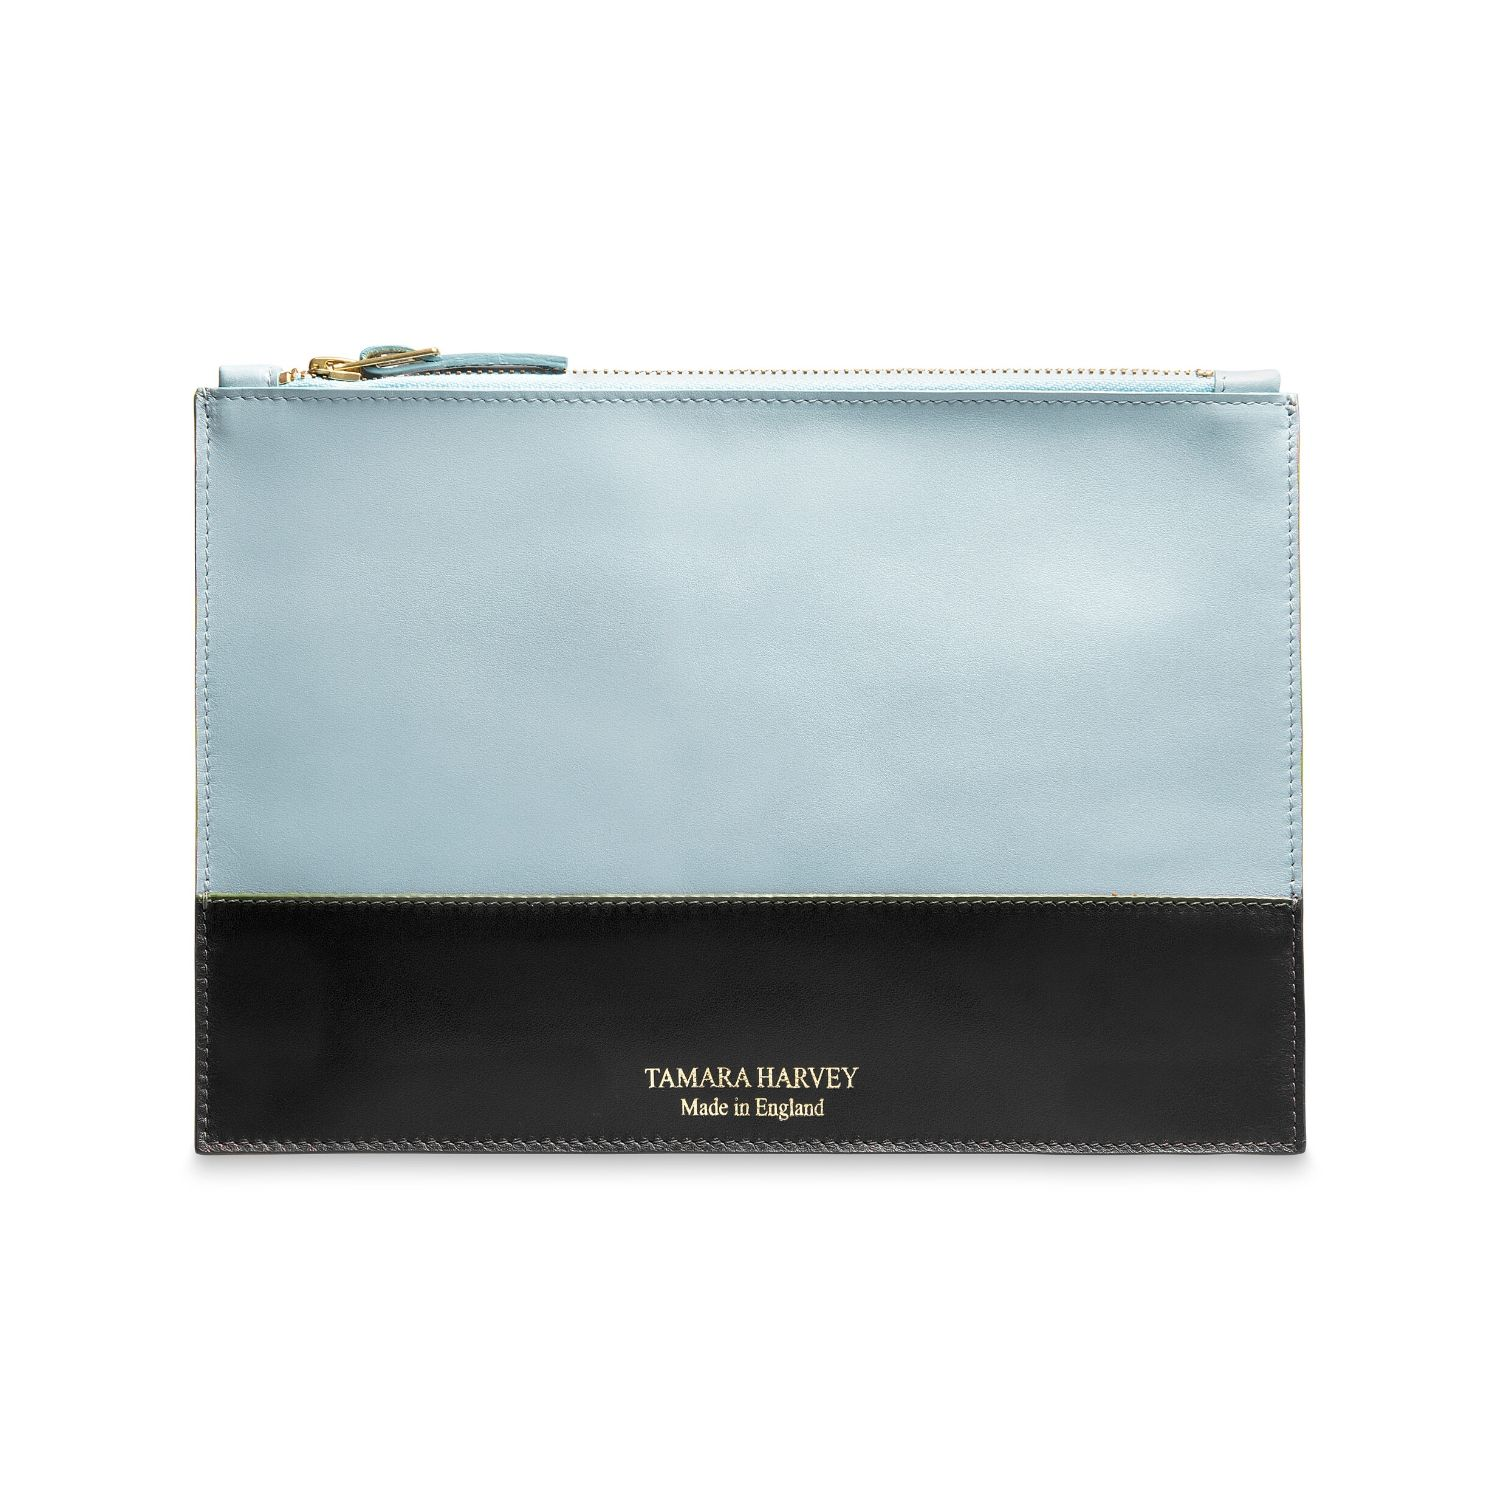 Duck Egg Blue Leather Zip Pouch Tamara Harvey